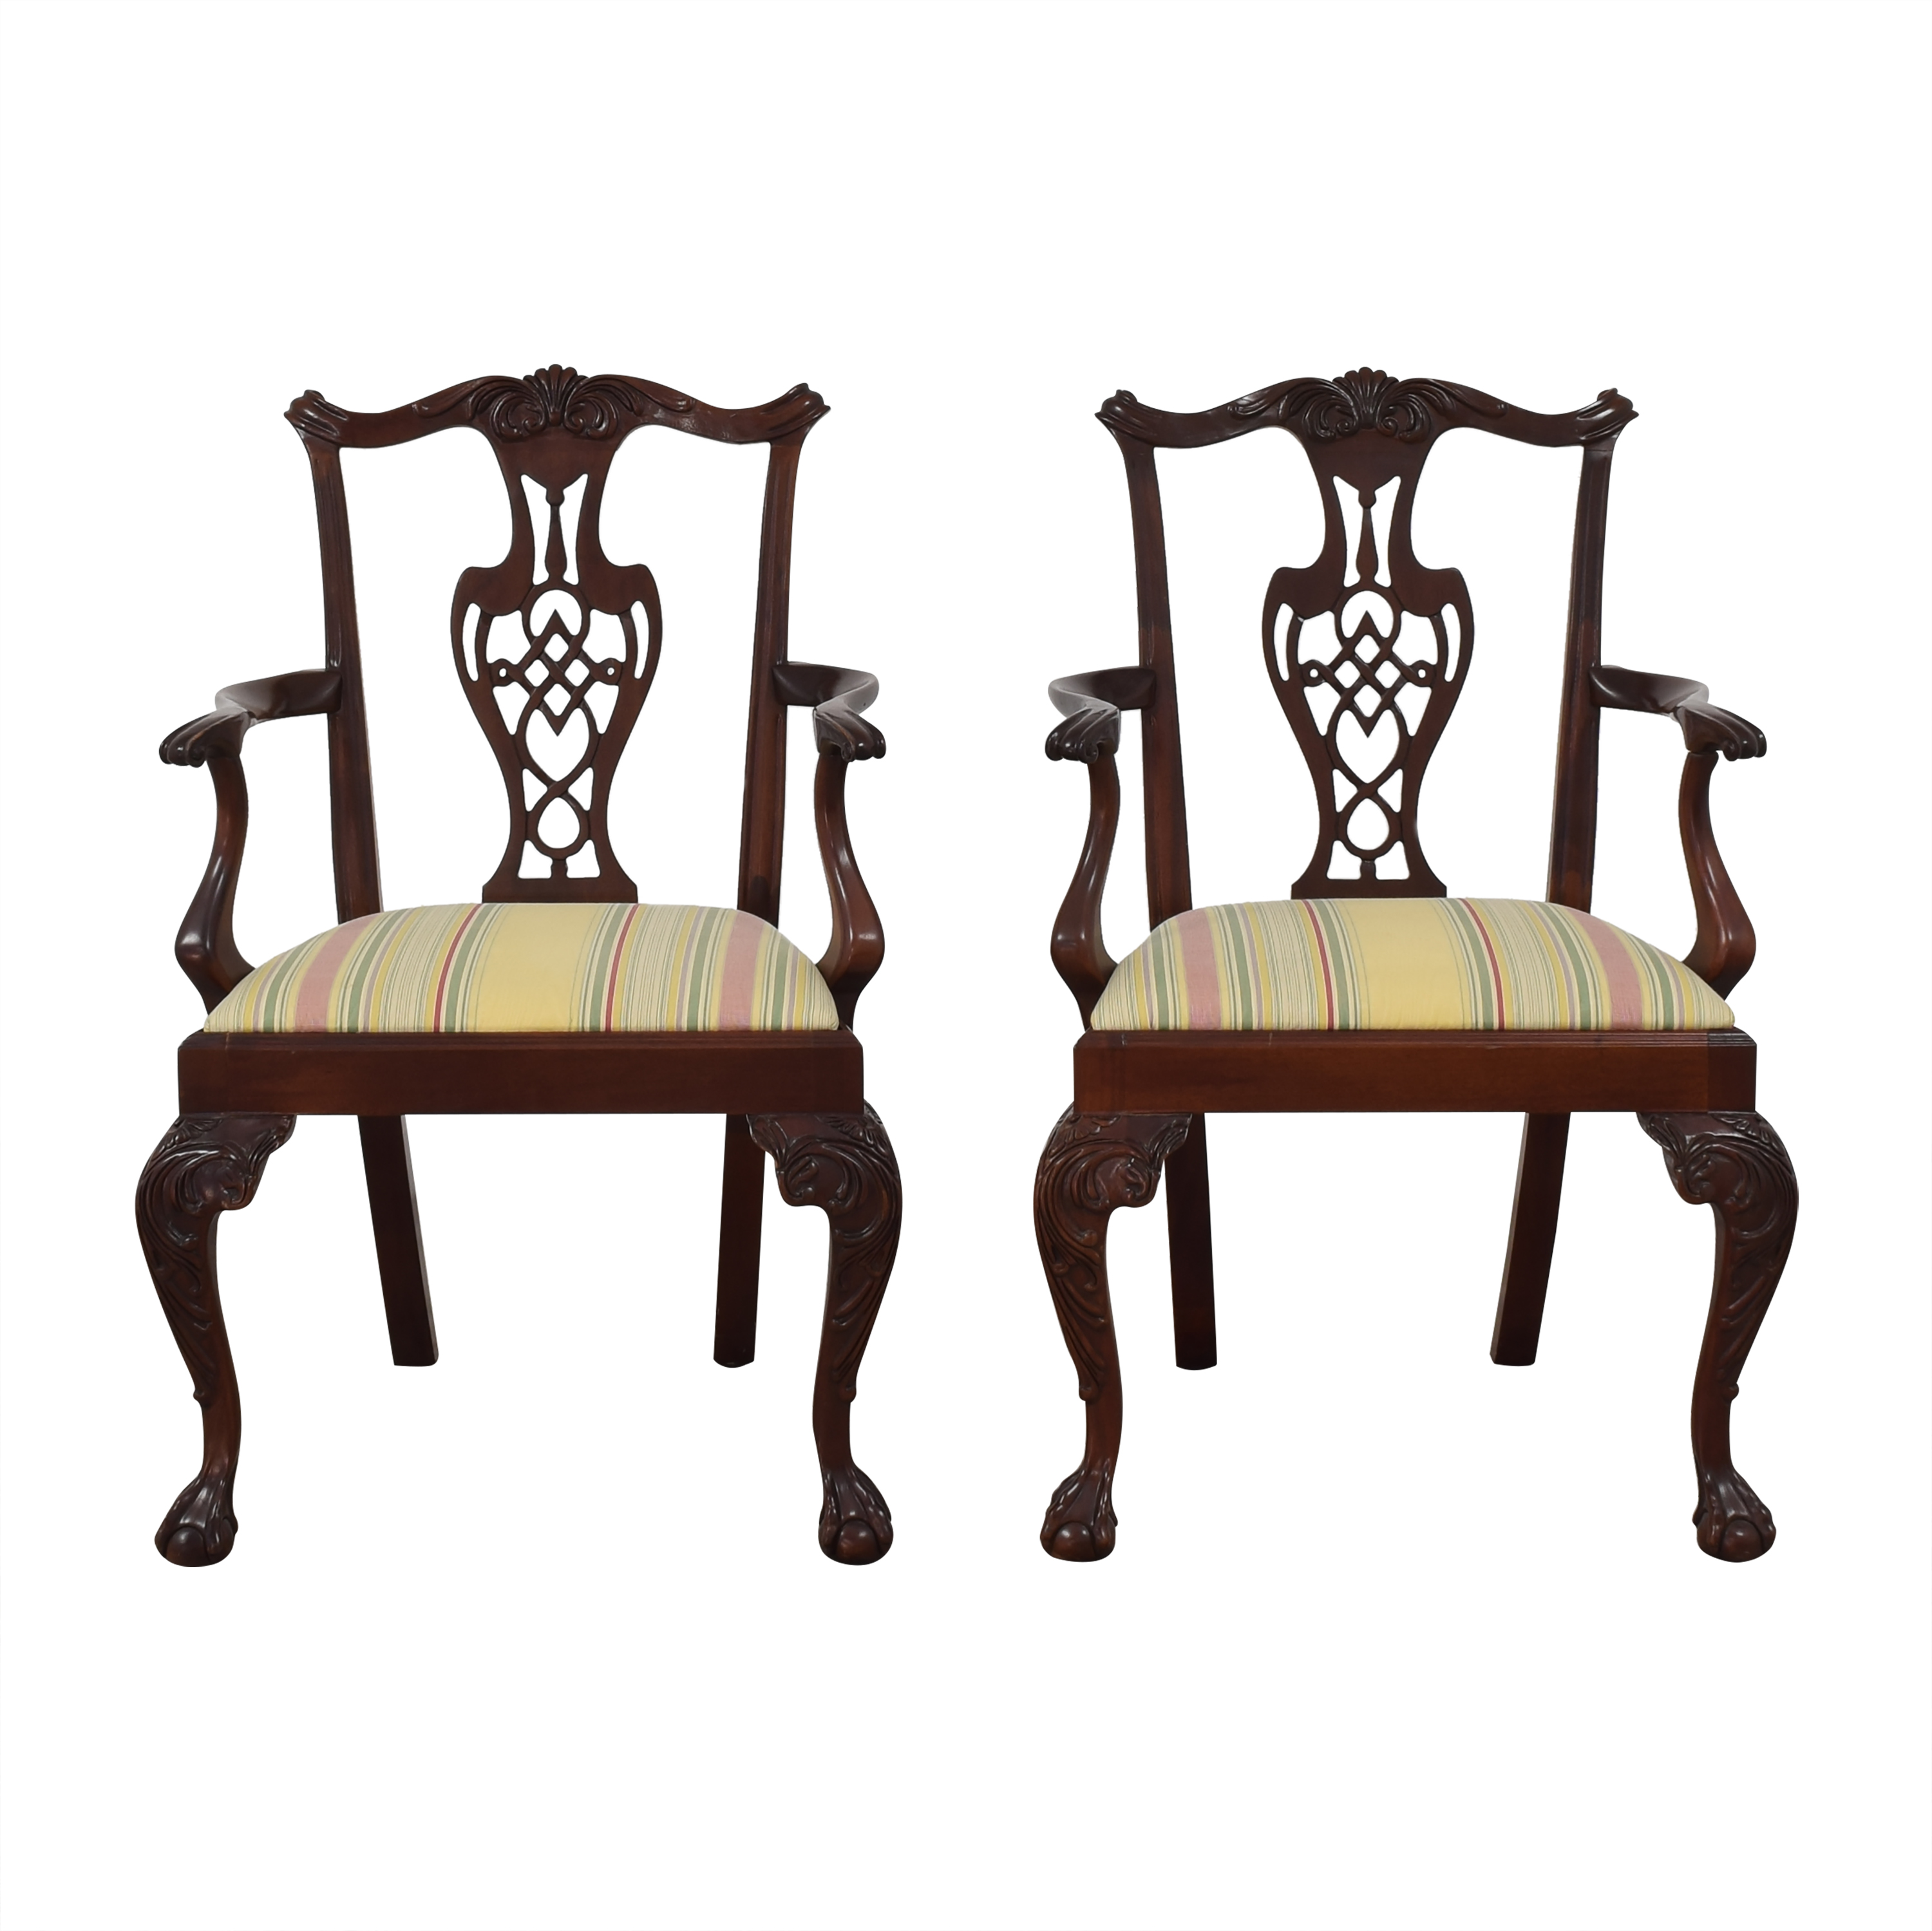 buy Hickory Chair Chippendale Dining Arm Chairs Hickory Chair Chairs